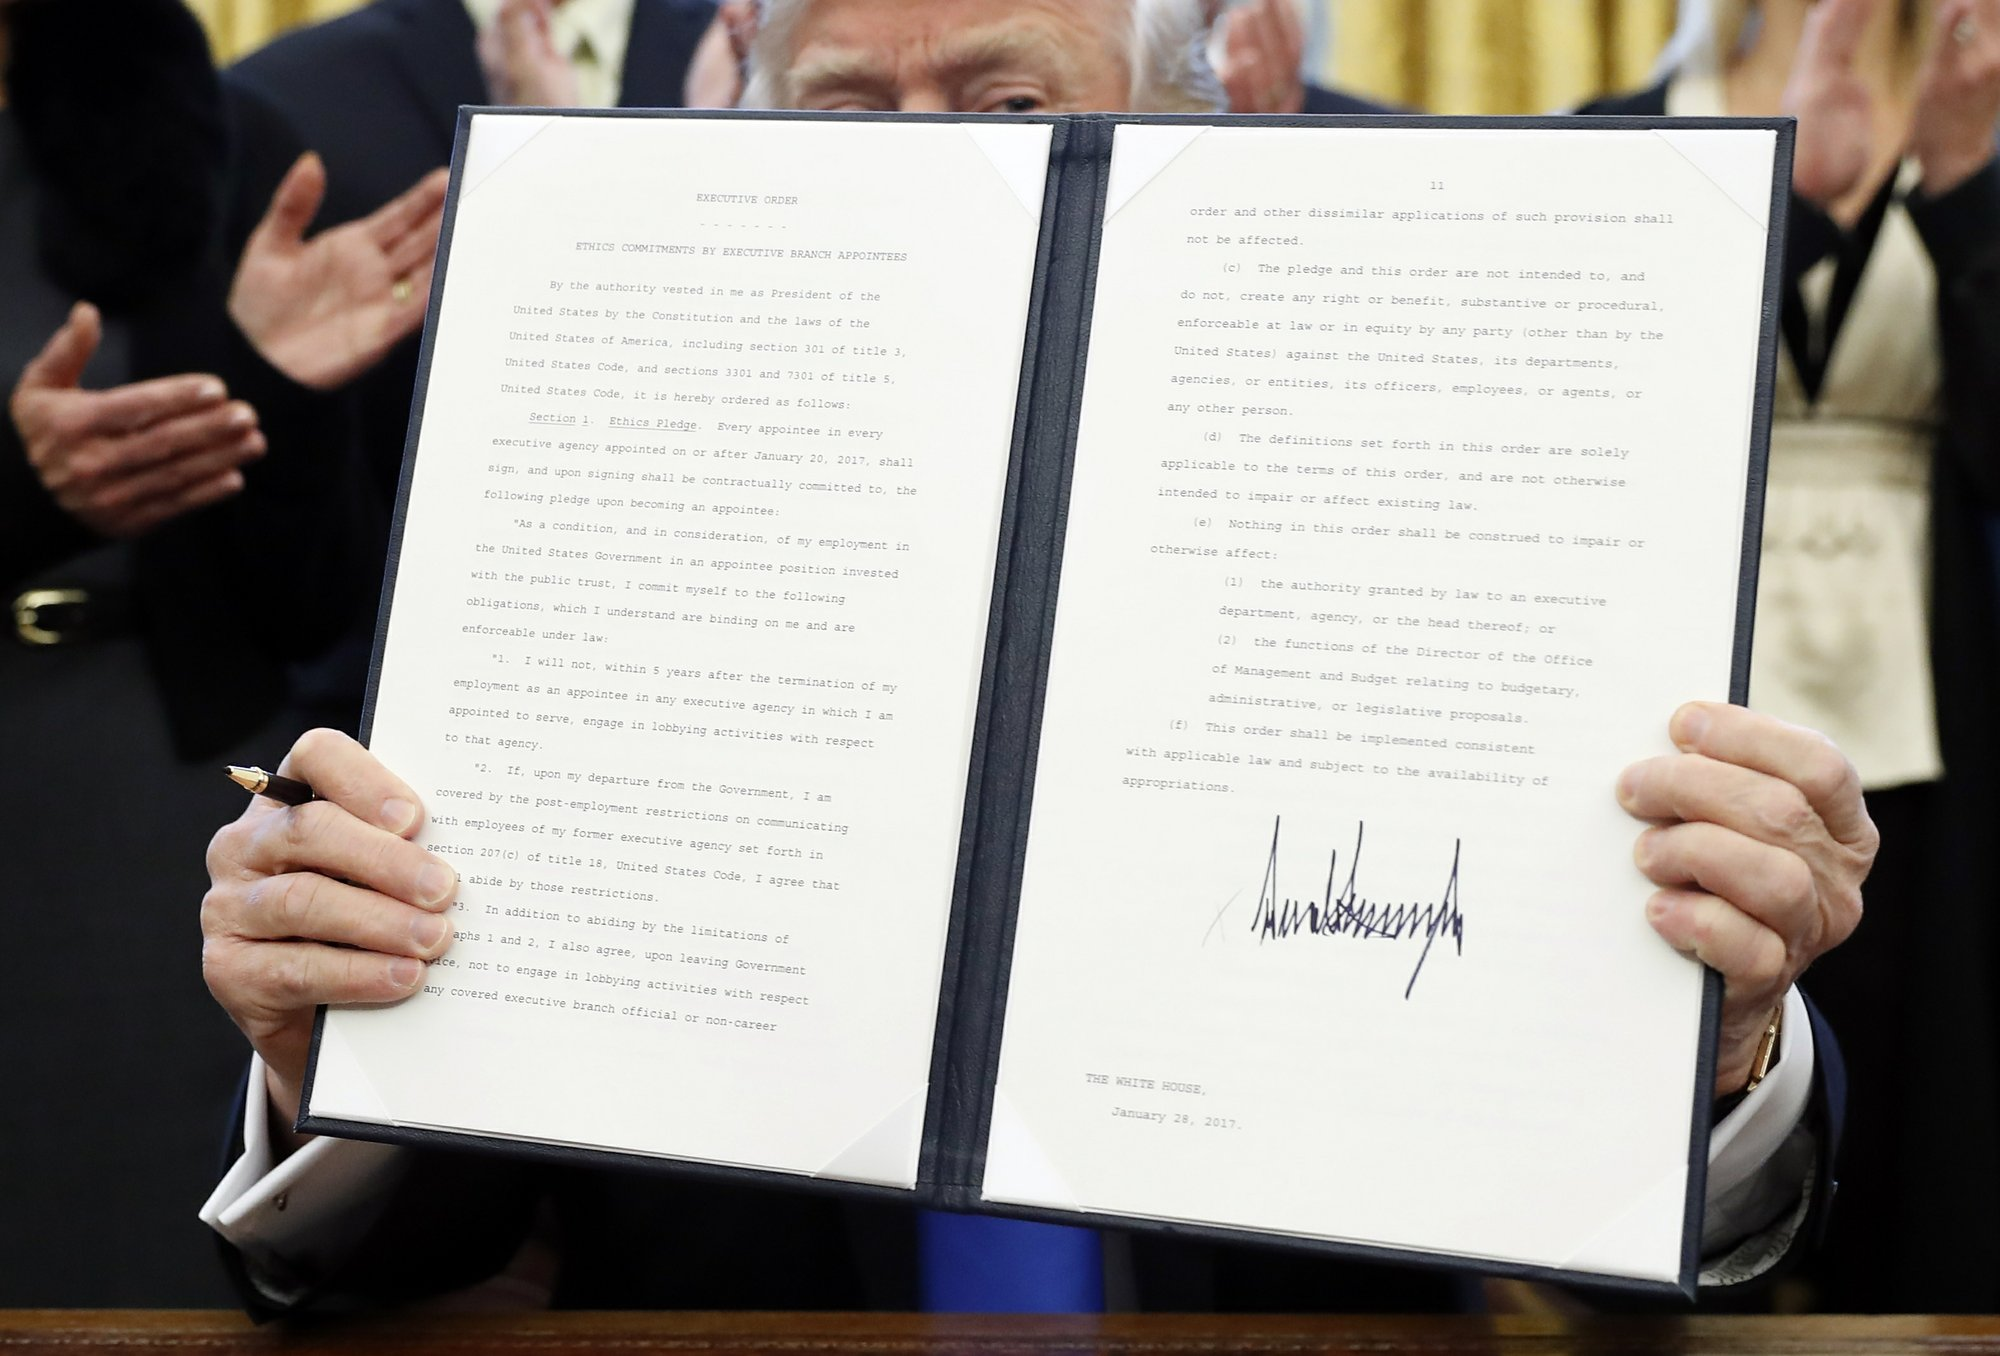 Trump sets 5-year and lifetime lobbying ban for officials